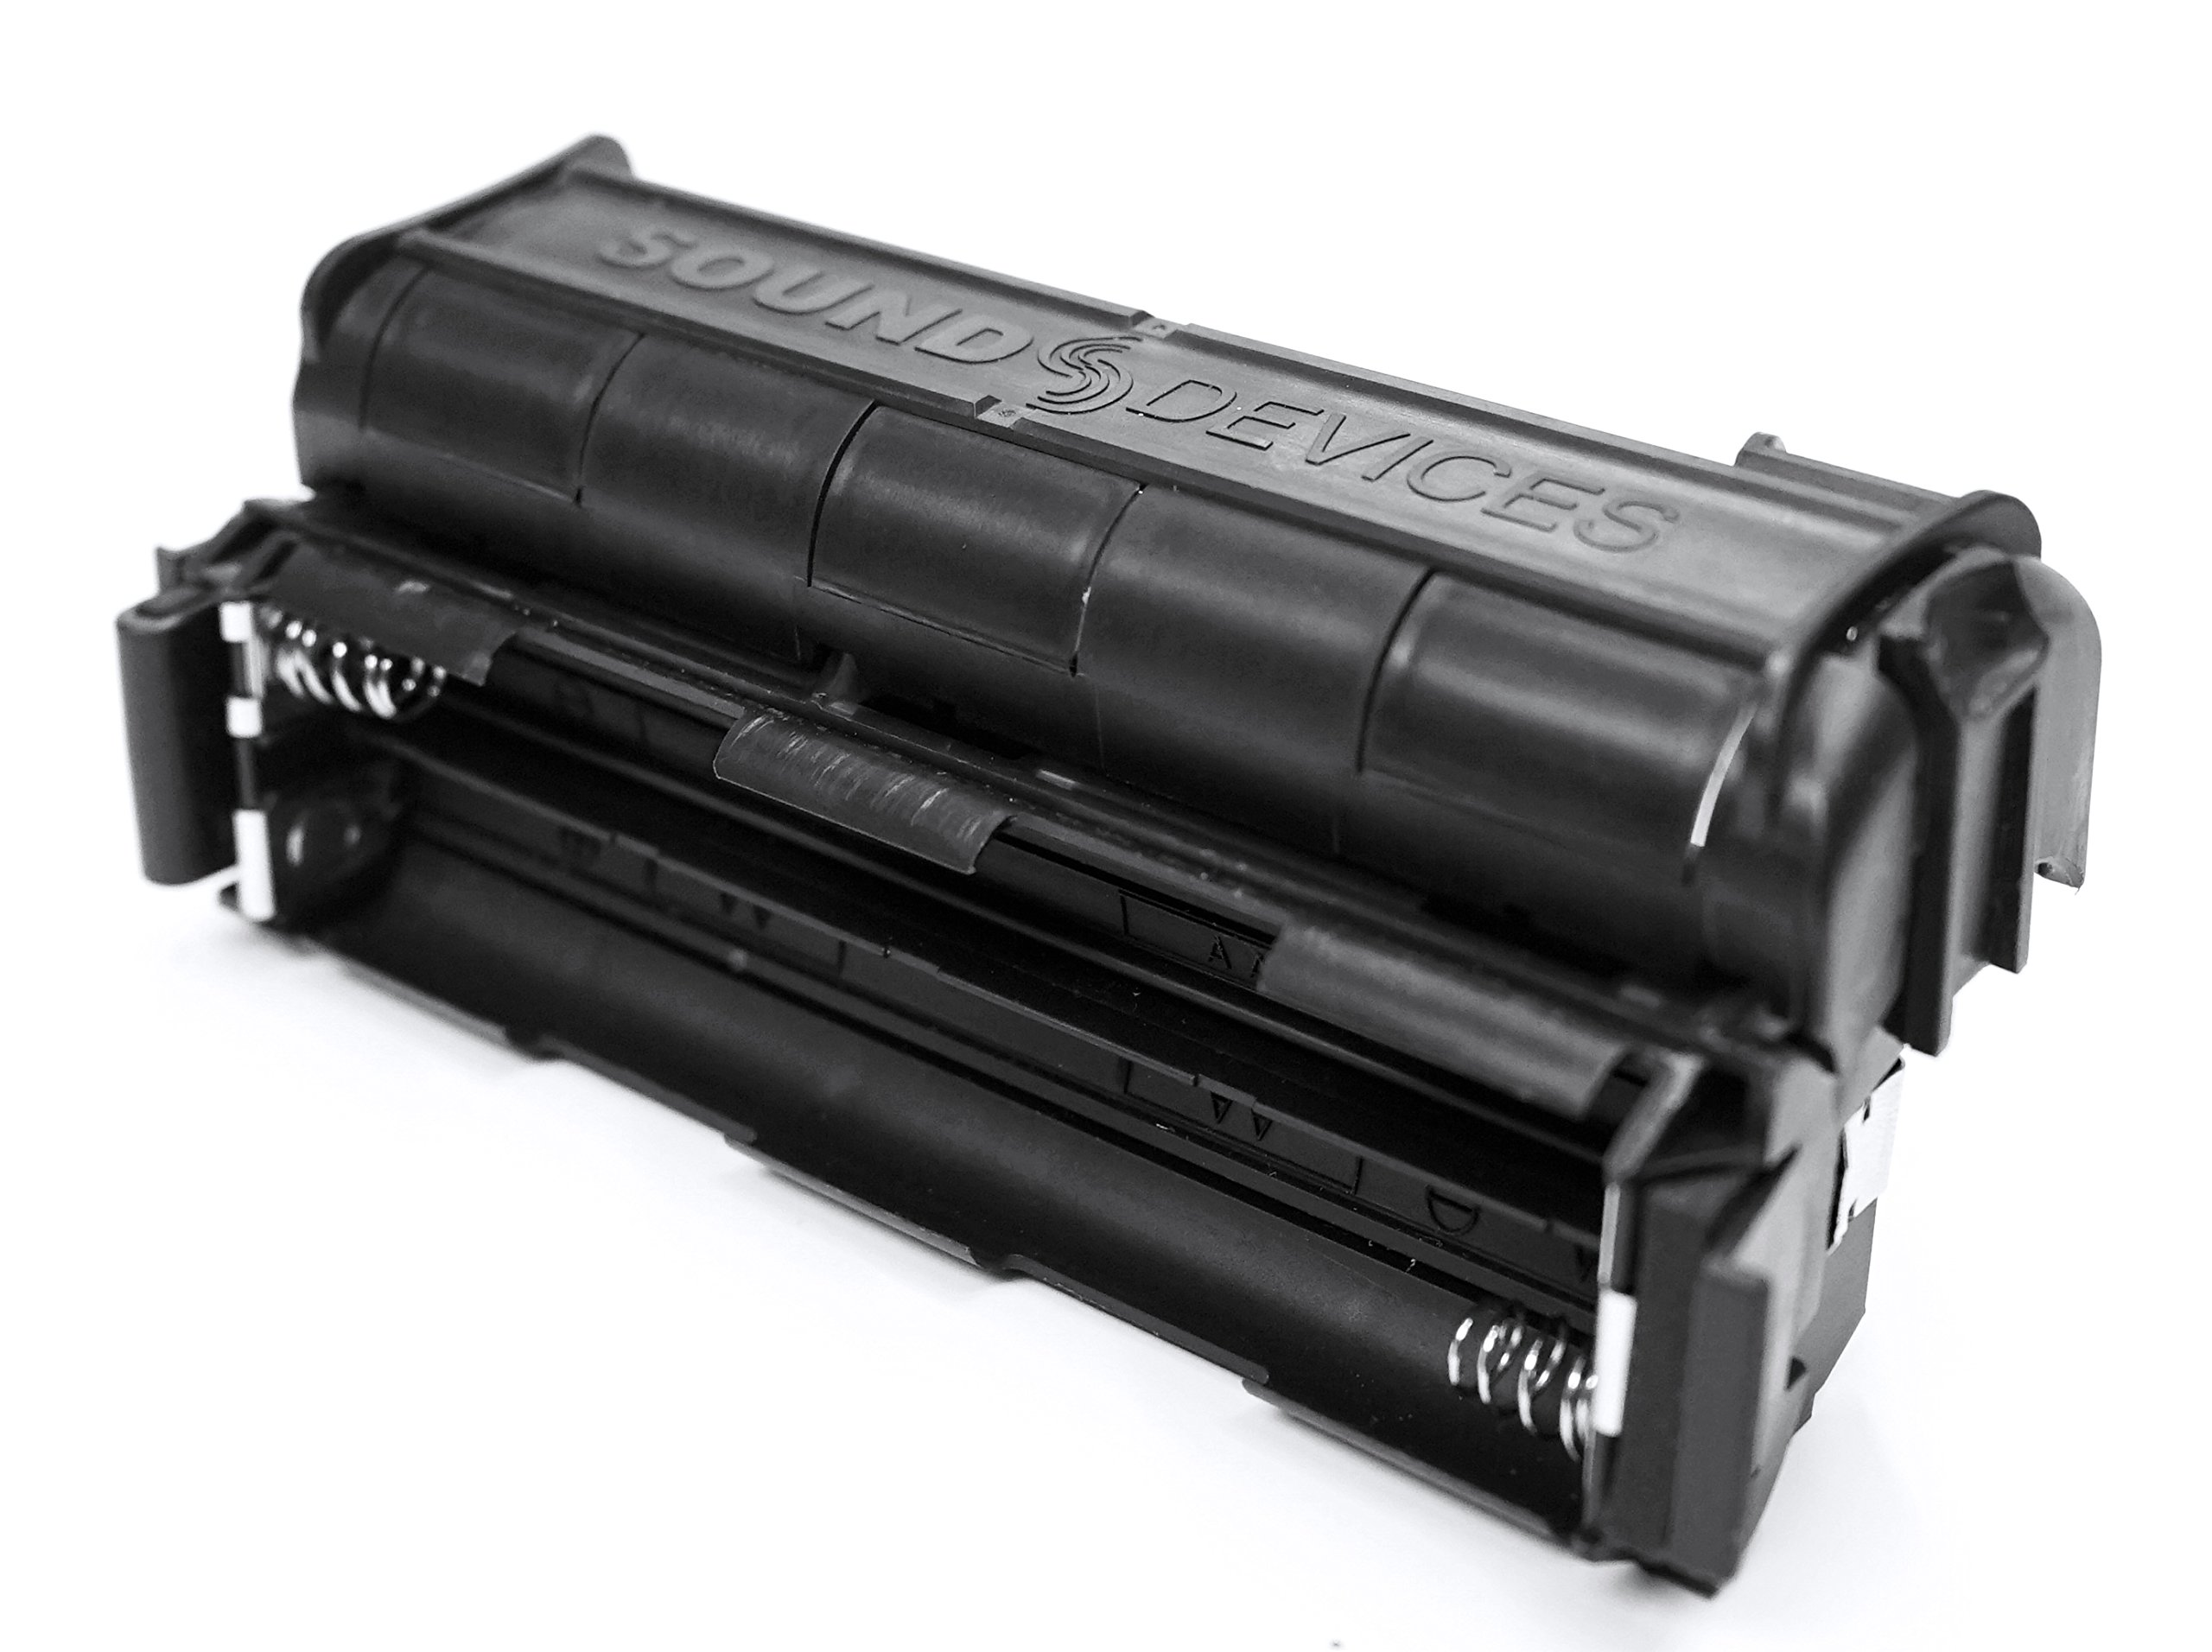 Sound Devices MX-8AA Battery Sled Accessory for the MixPre-3 & MixPre-6 Audio Recorders